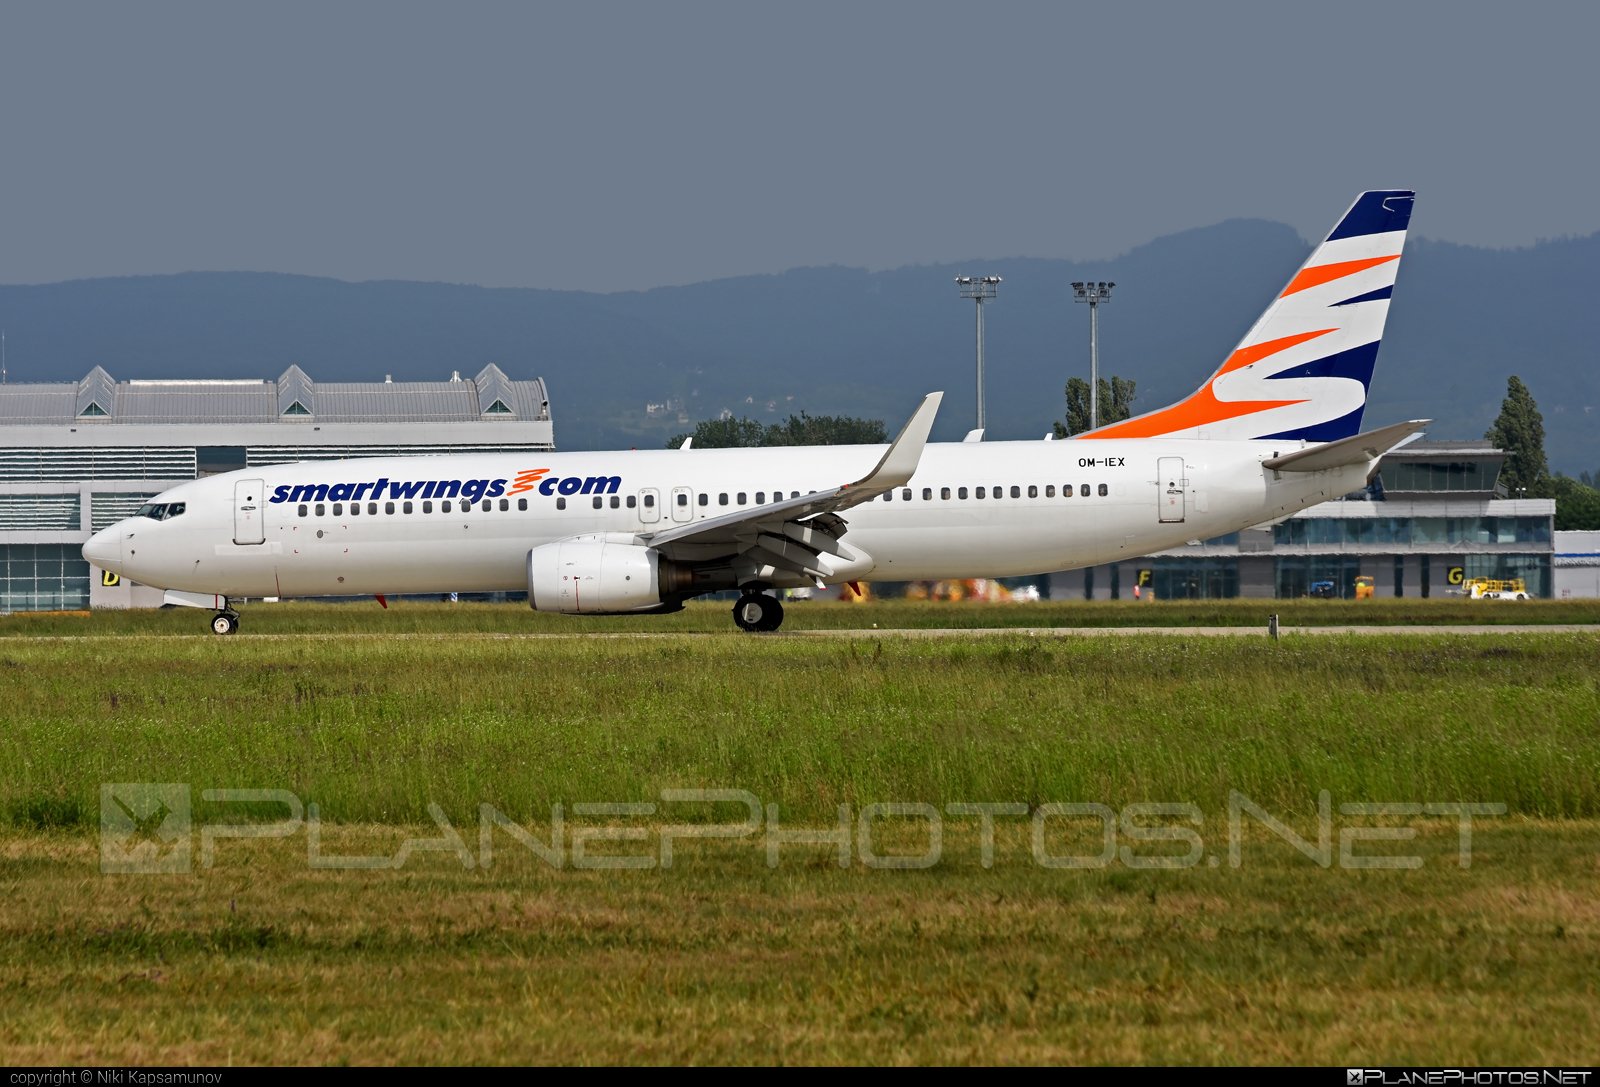 Boeing 737-800 - OM-IEX operated by AirExplore #airexplore #b737 #b737nextgen #b737ng #boeing #boeing737 #smartwings